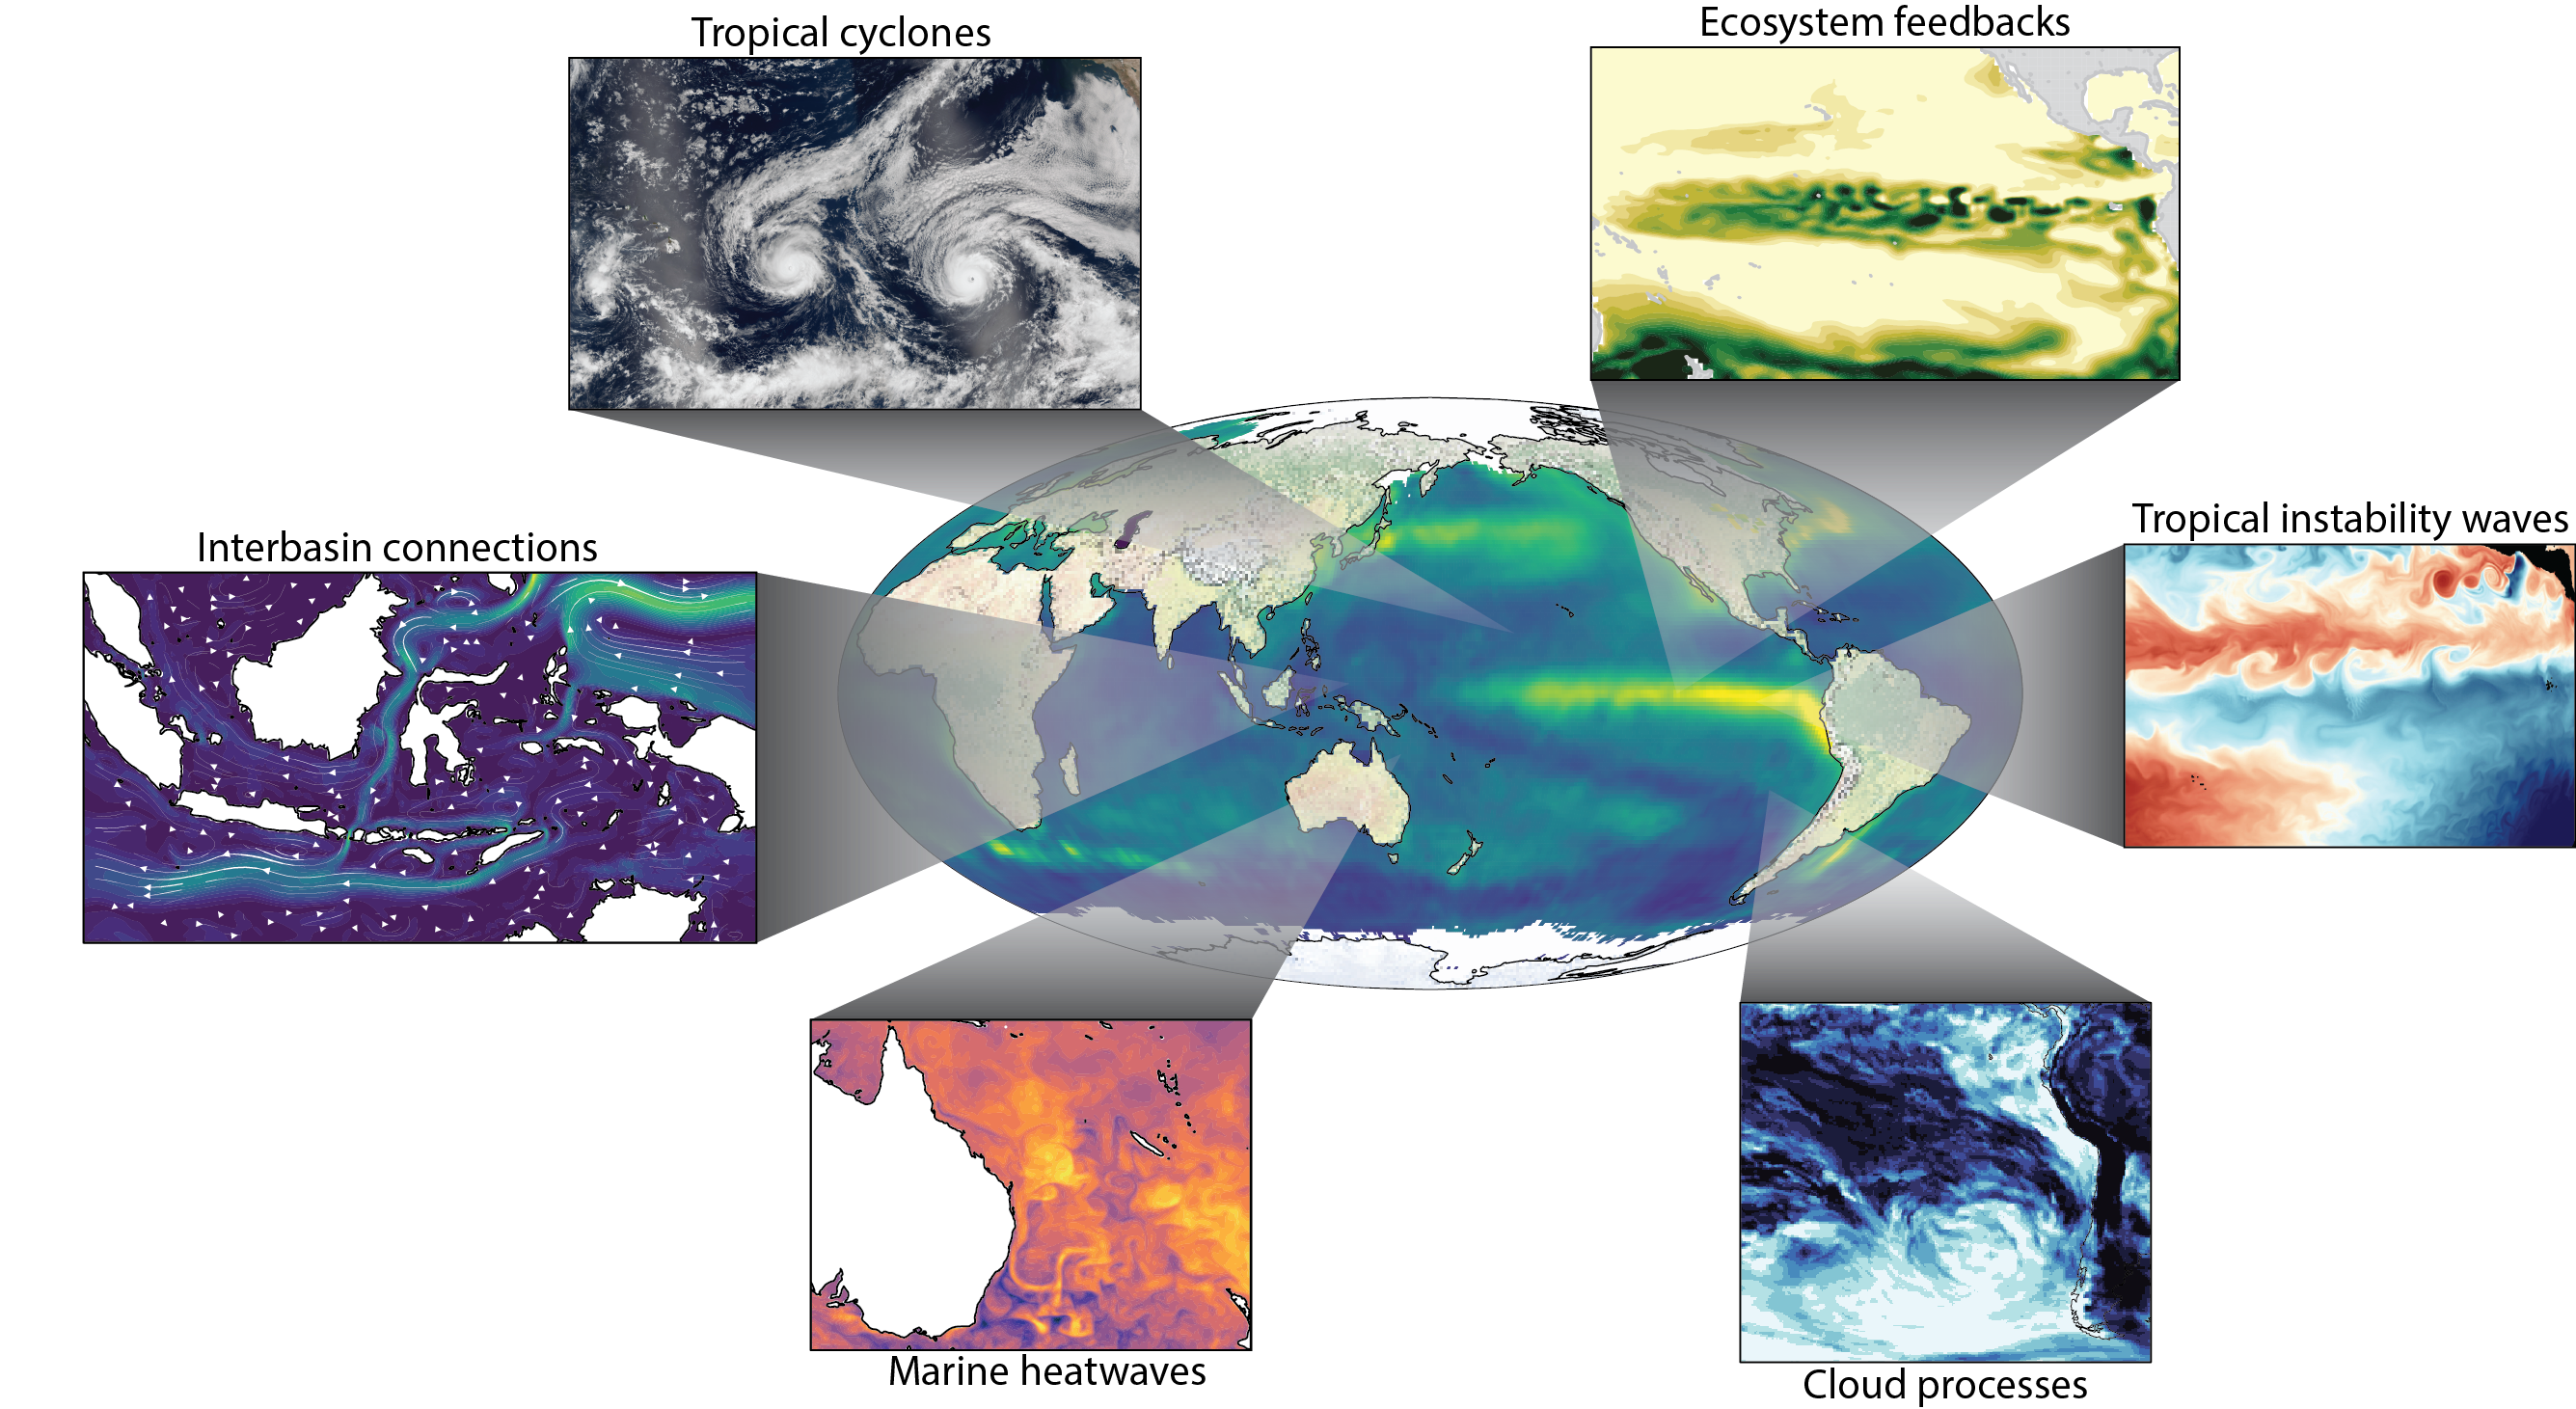 Potential foci of future ENSO research includes some of the physical processes (such as cyclones, marine heat waves, cloud processes, ocean basin connections) that require advancements in observing systems and climate model resolution and complexity.